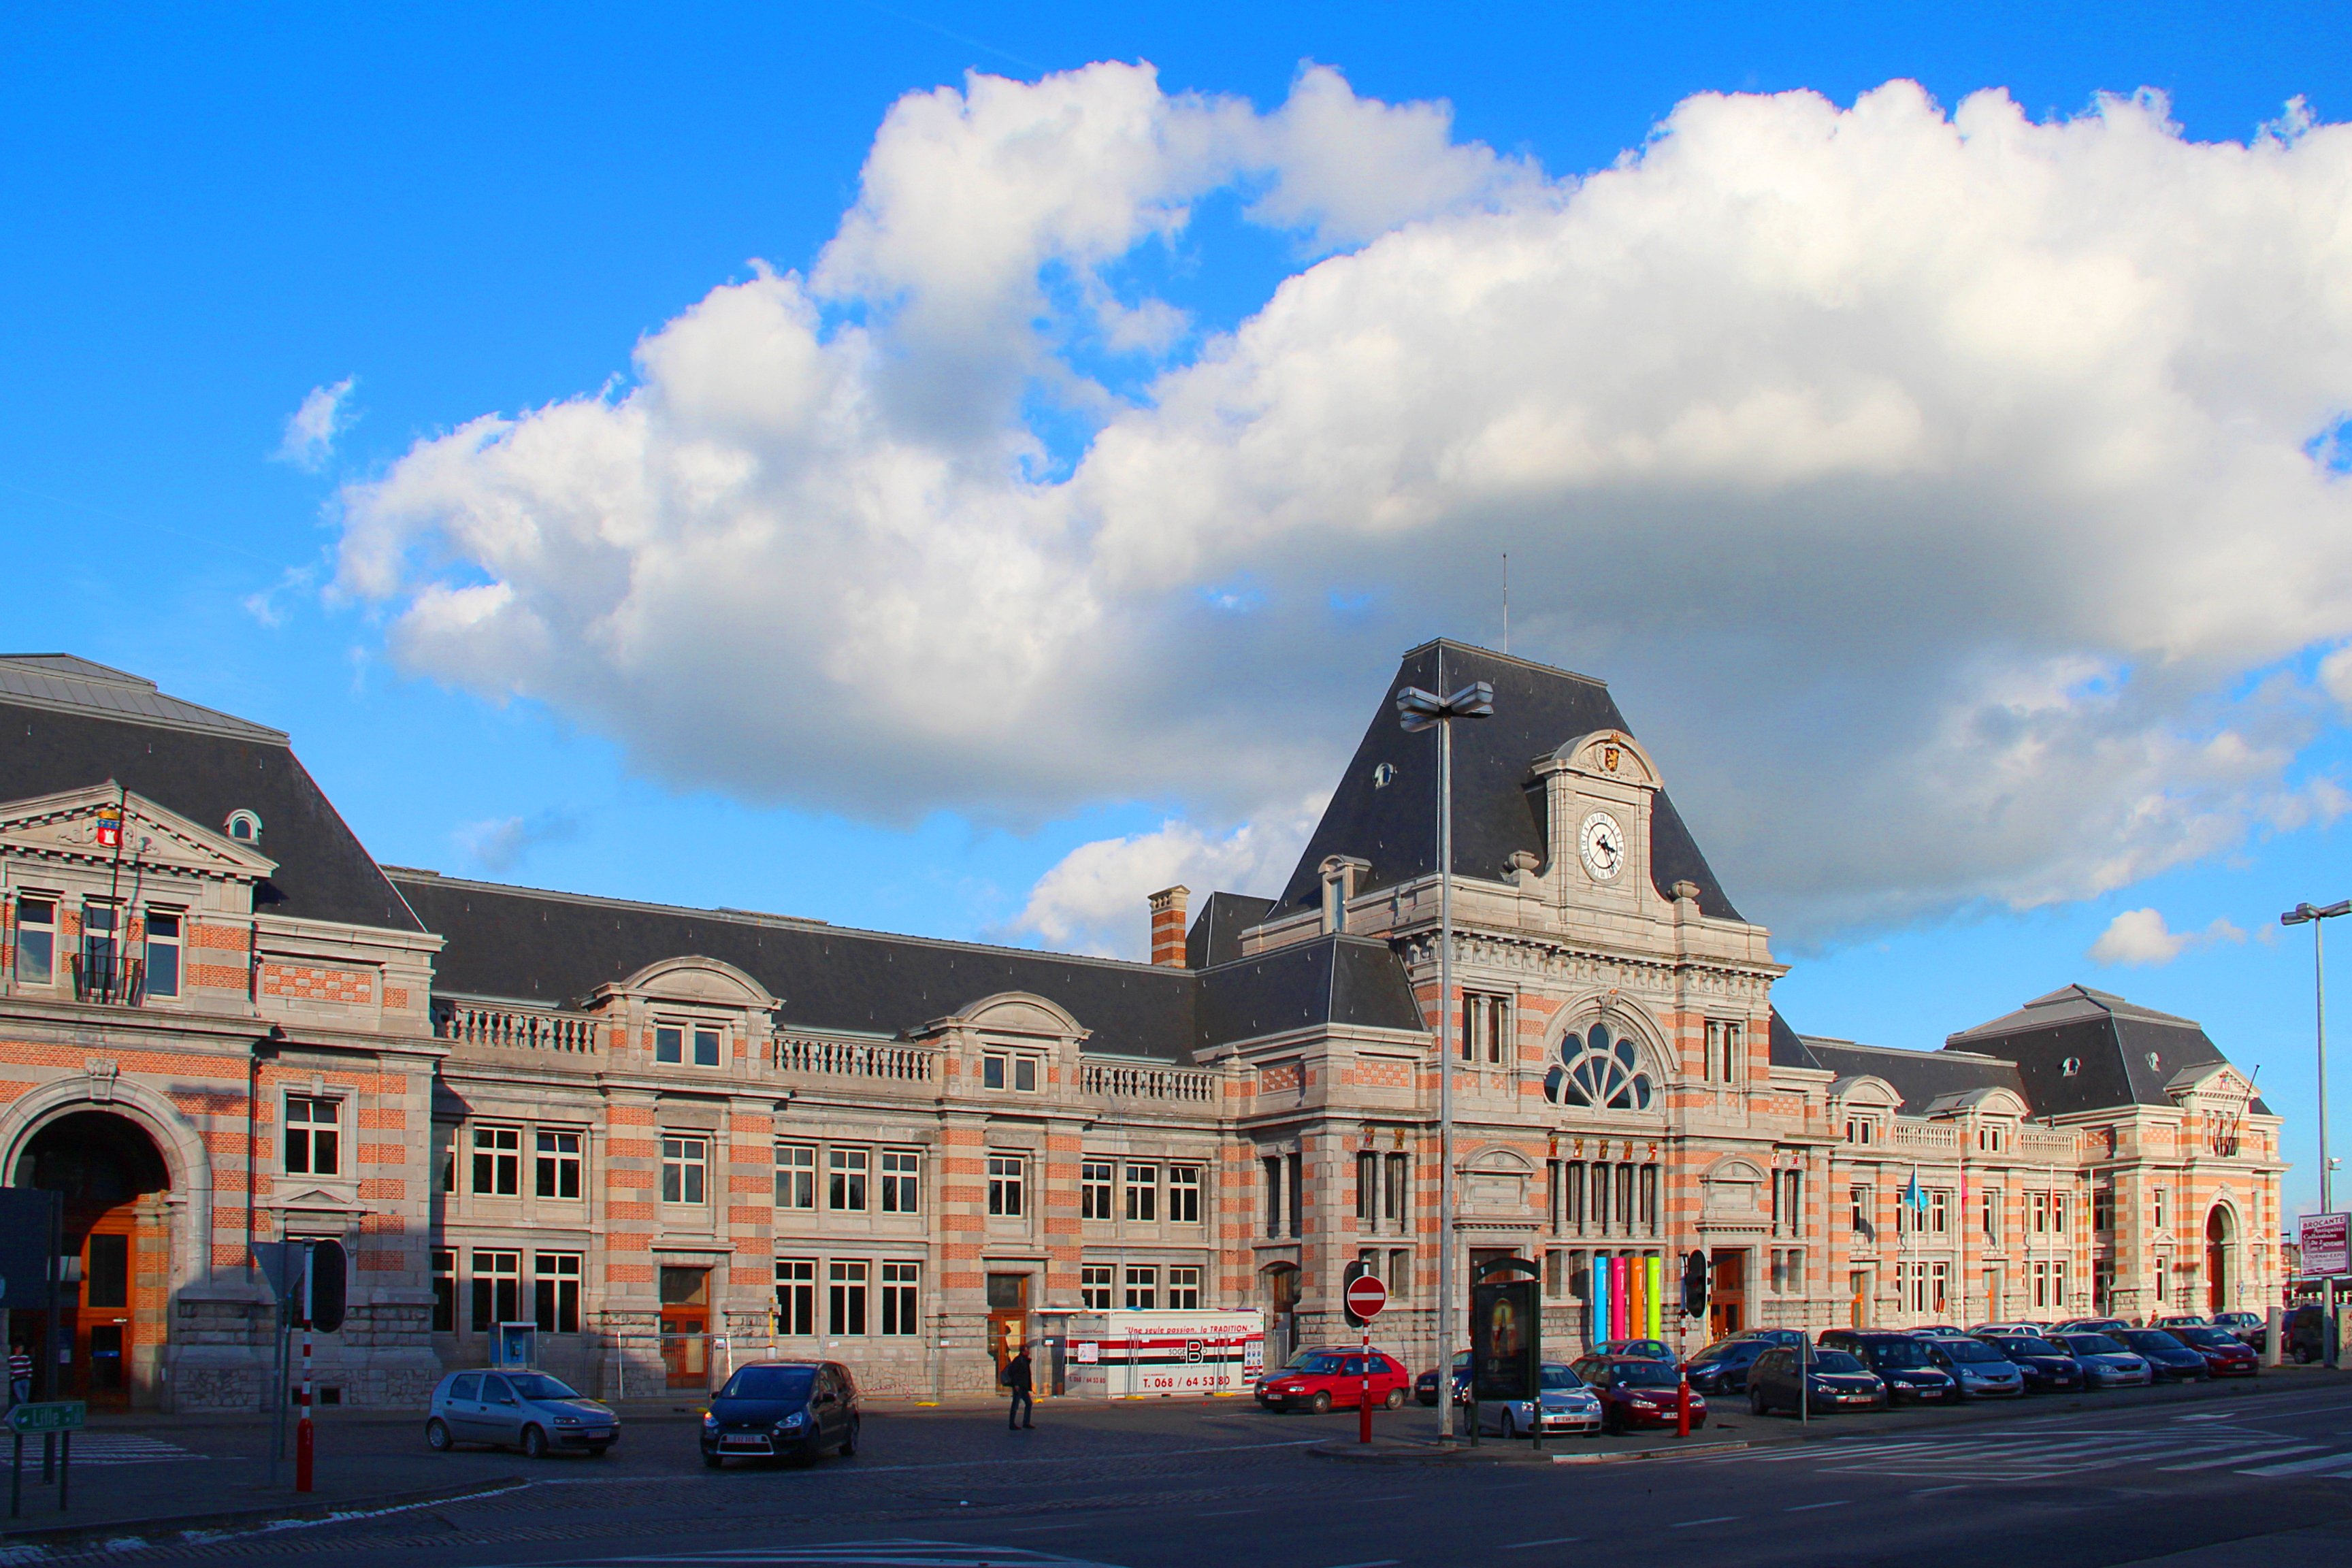 http://upload.wikimedia.org/wikipedia/commons/9/9c/0_Tournai_-_Gare_SNCB_(1).JPG